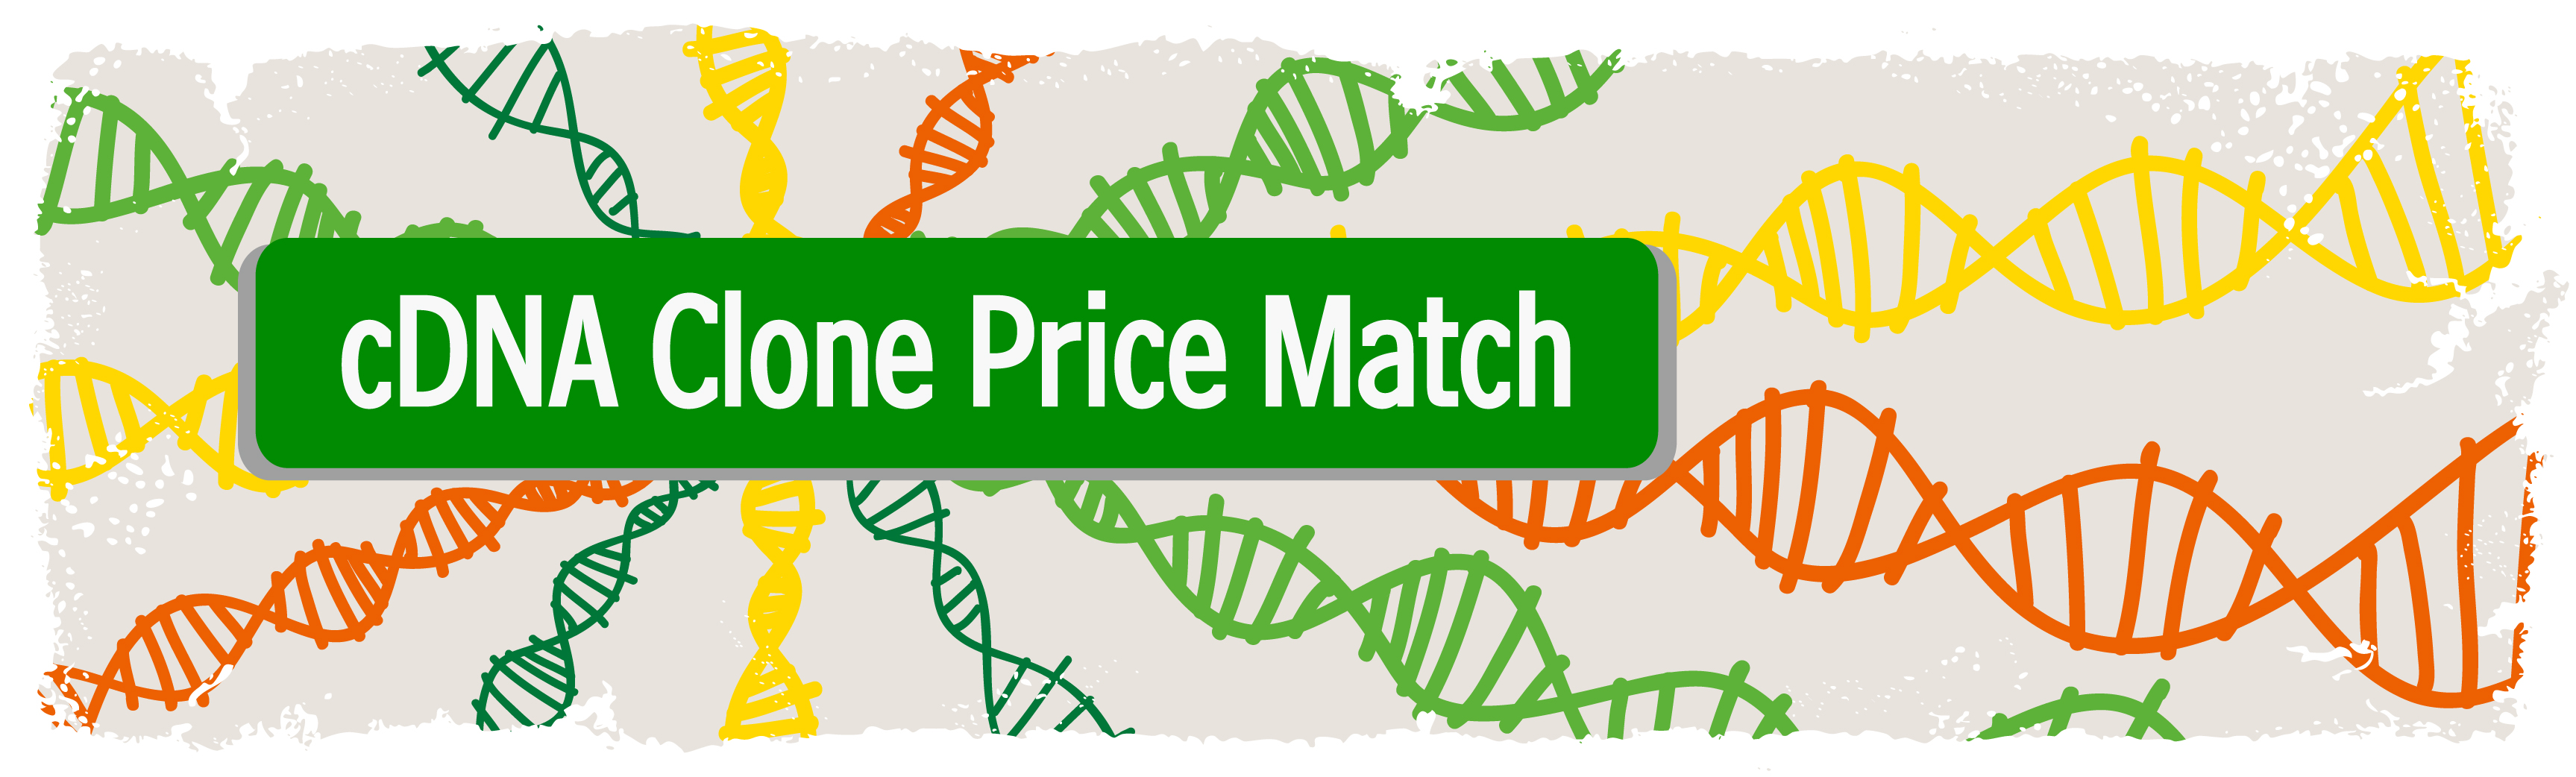 cDna Clone Price Match